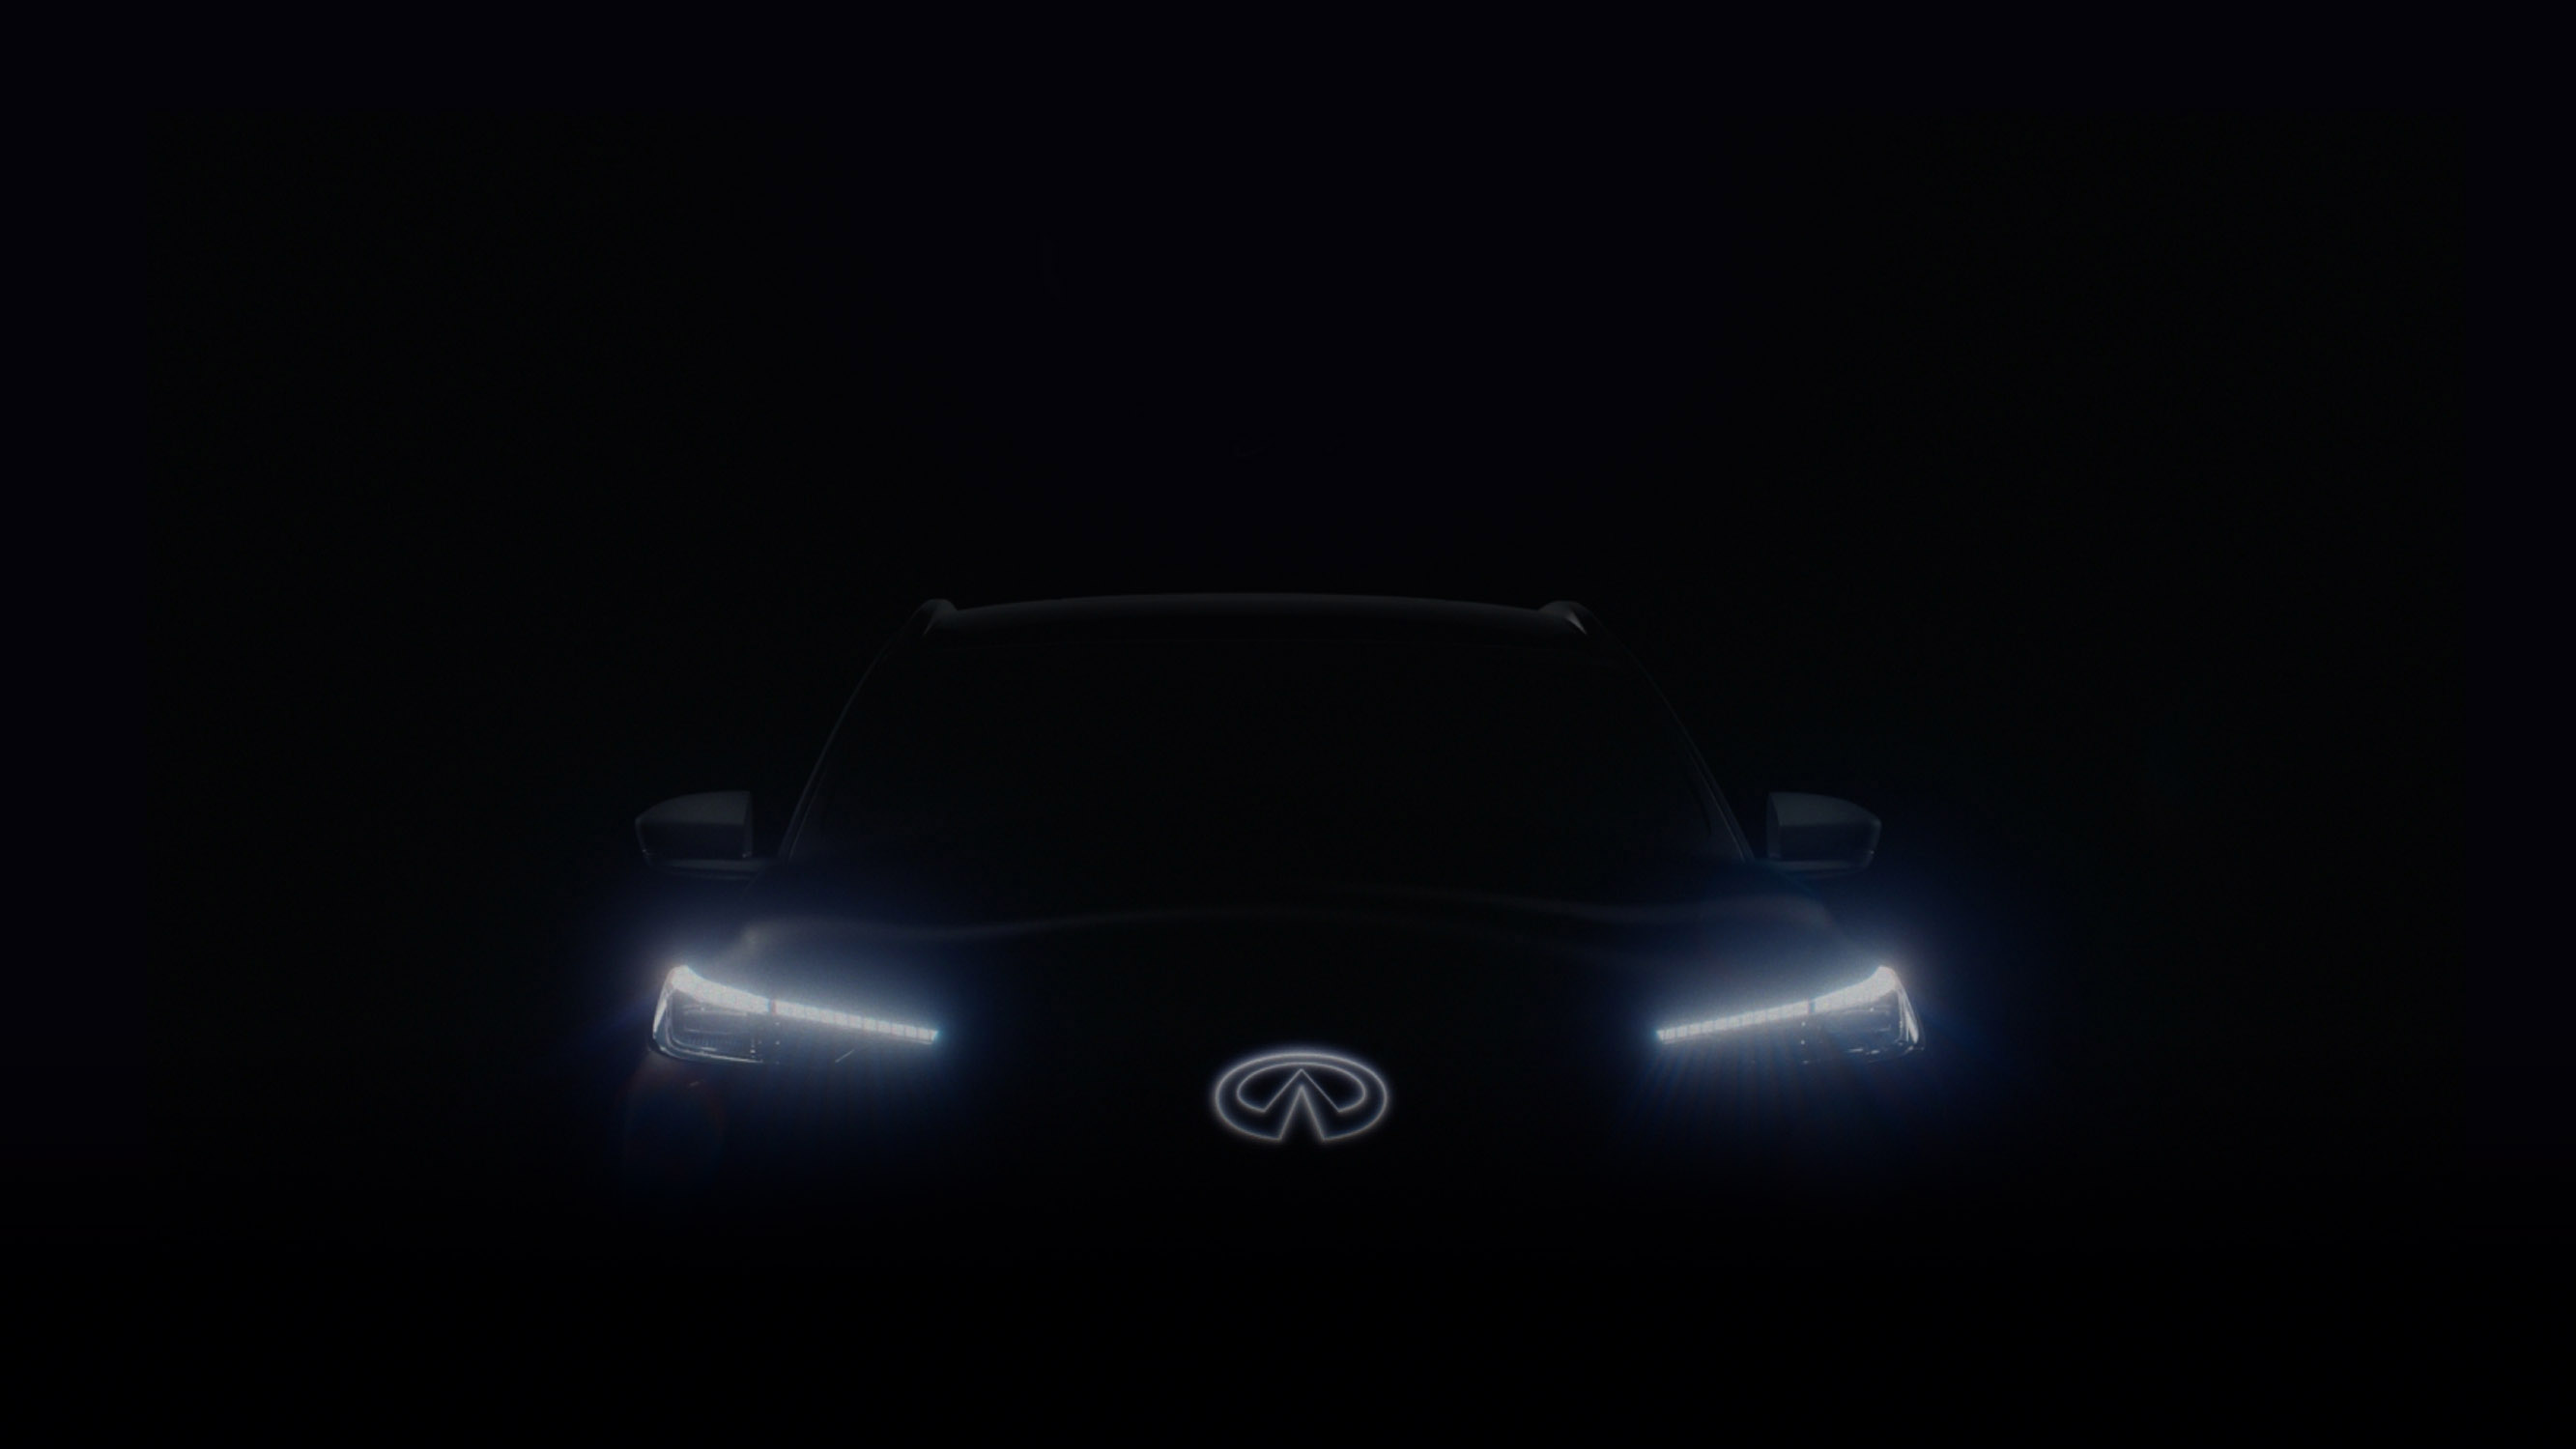 QX60 Monograph in the dark with the headlights and INFINITI badge brightly lit - QX60 Monograph teaser video thumbnail